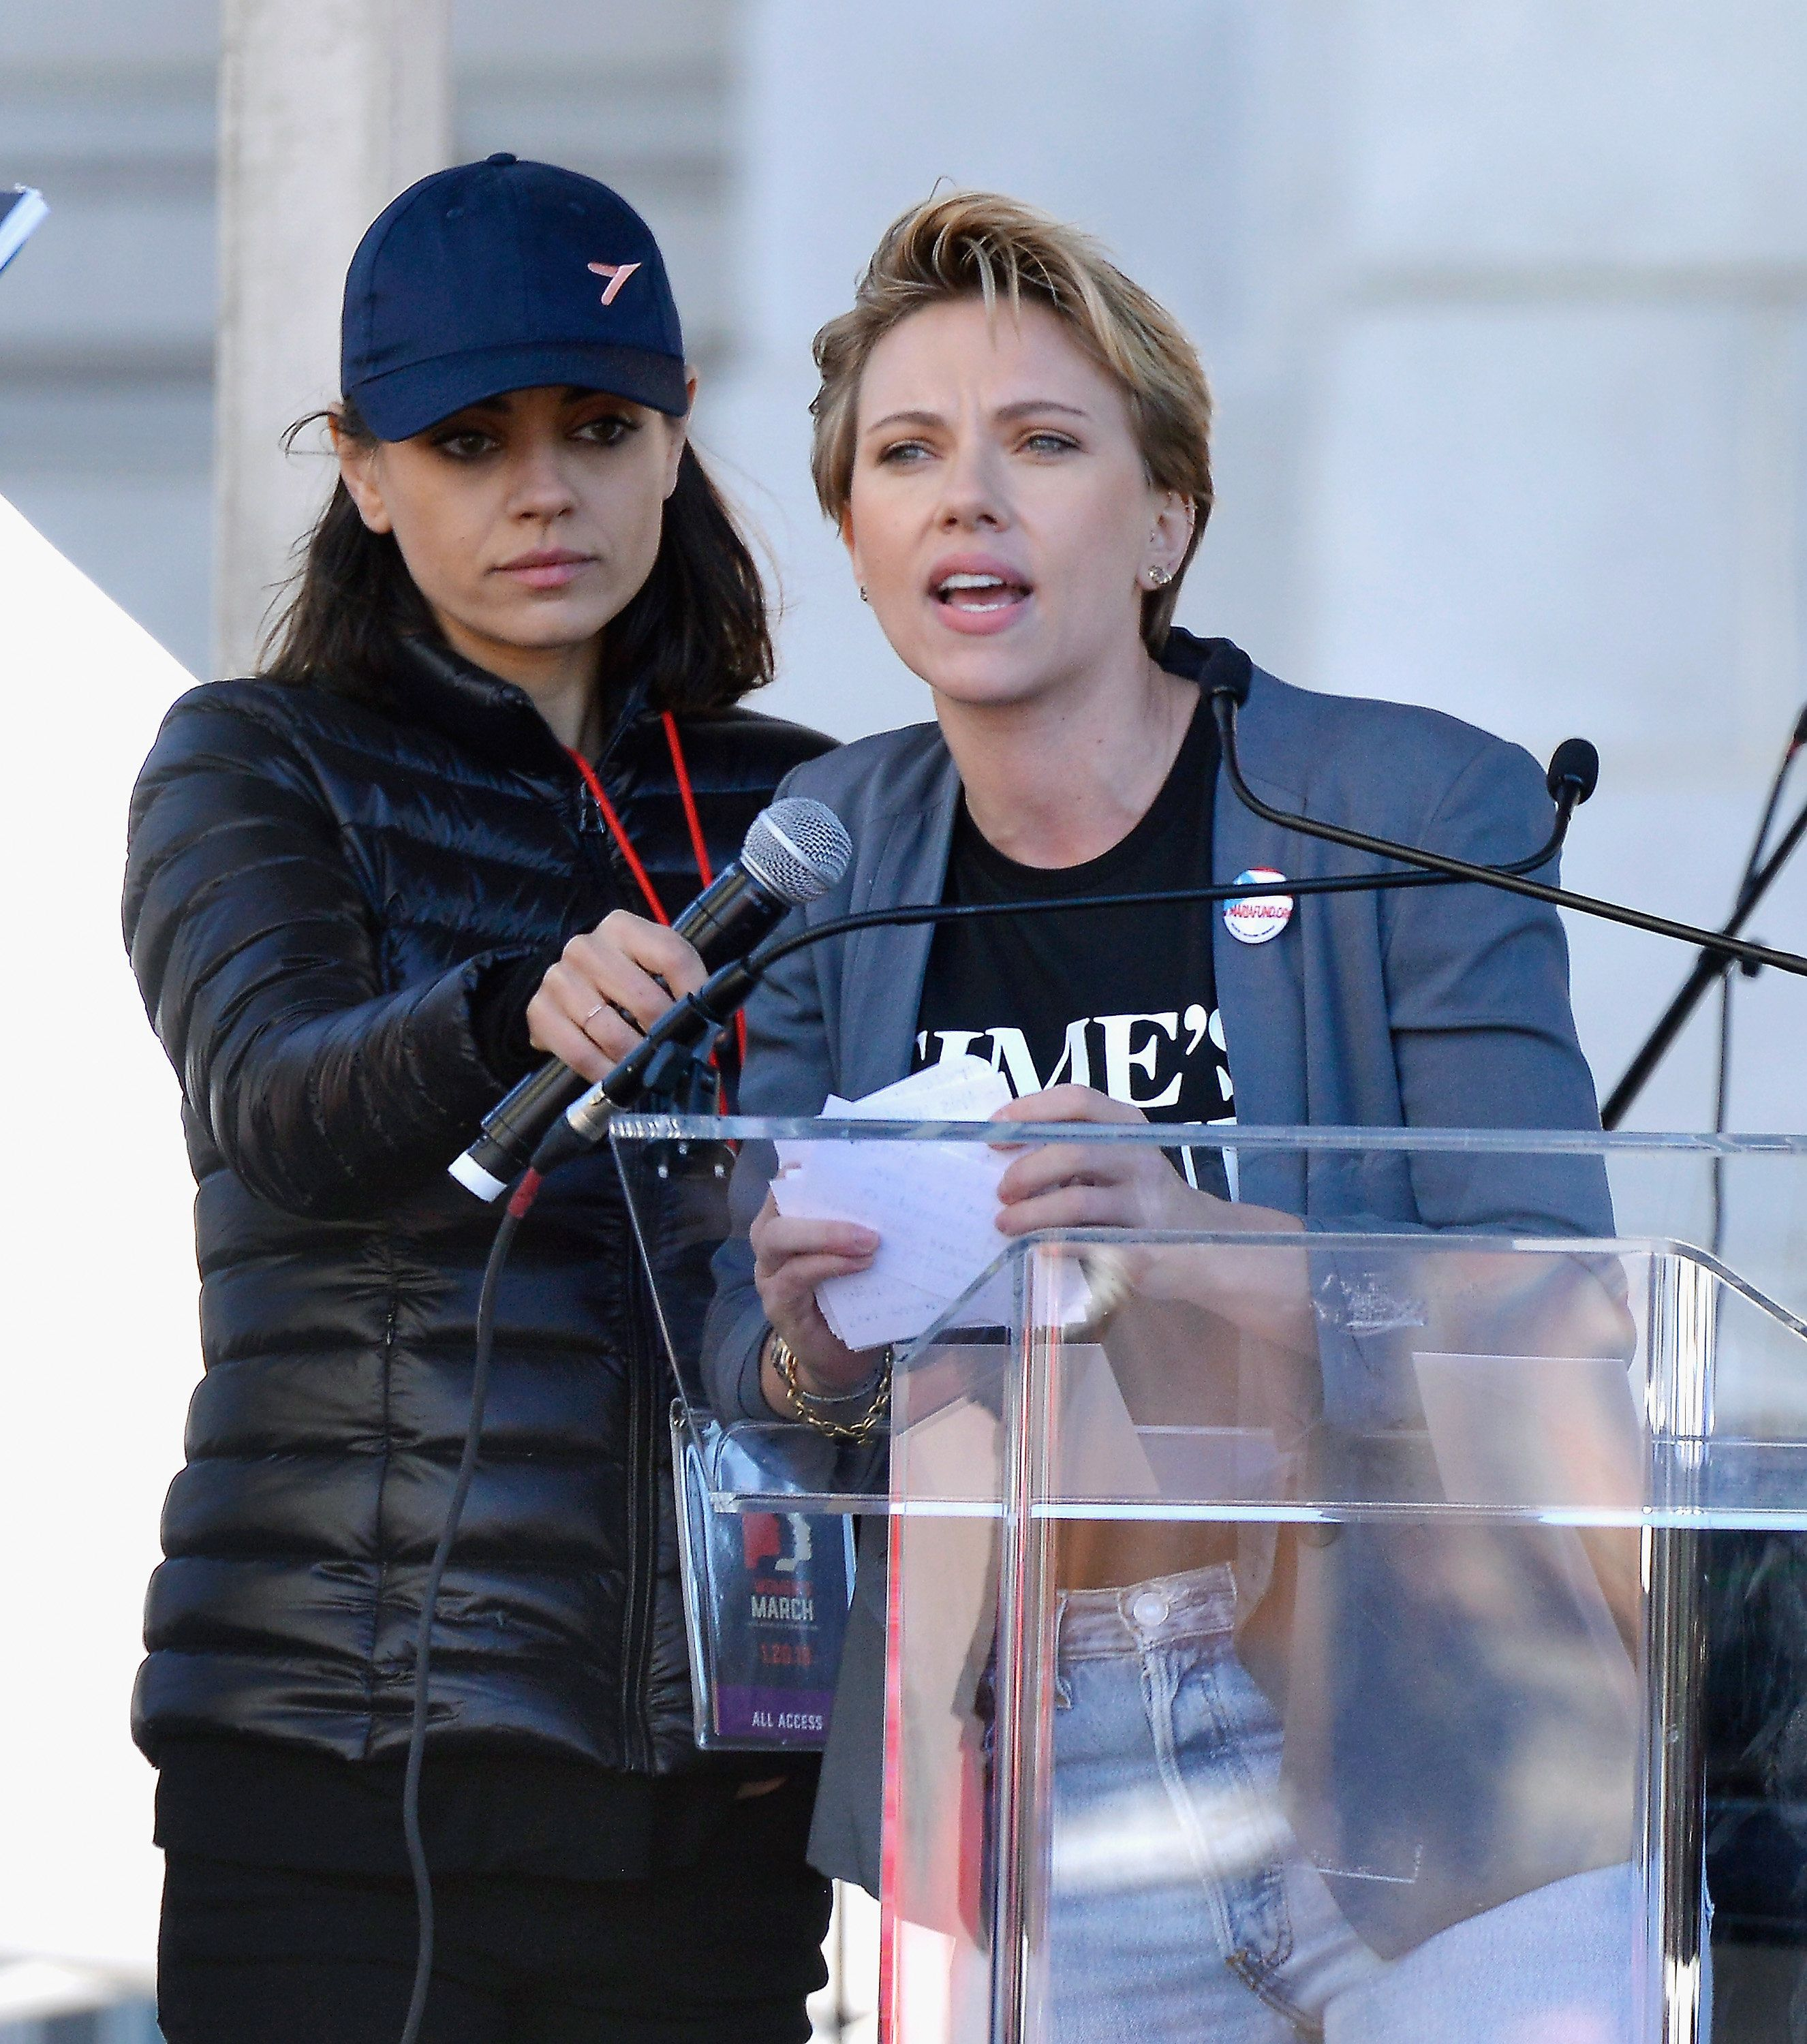 LOS ANGELES, CA - JANUARY 20:  Mila Kunis supports Scarlett Johansson as she speaks during the Women's March Los Angeles 2018 on January 20, 2018 in Los Angeles, California.  (Photo by Chelsea Guglielmino/Getty Images)